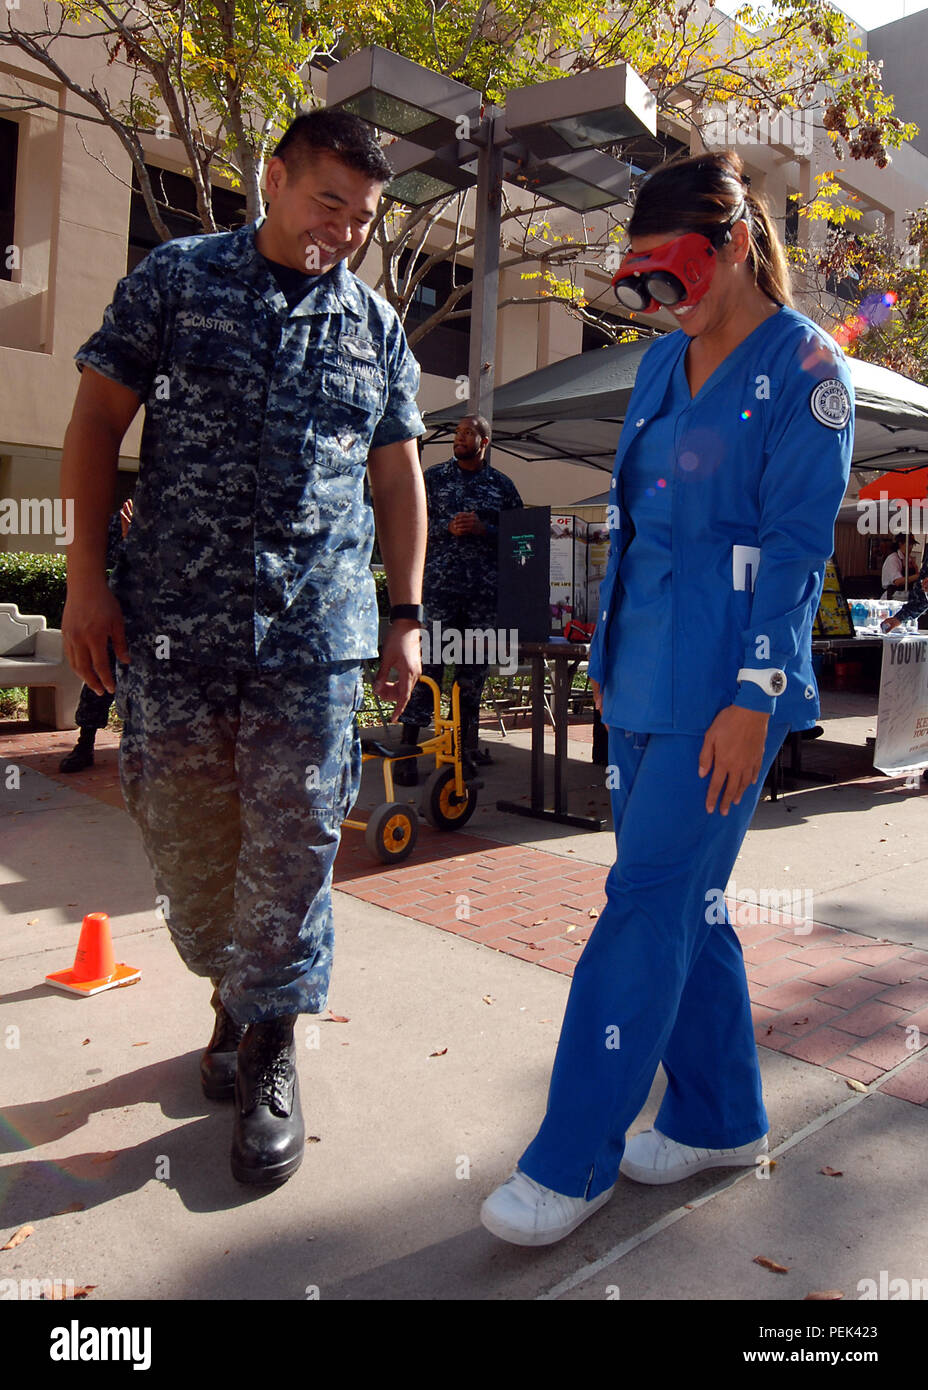 151210-N-BB534-001 SAN DIEGO (Dec. 10, 2015) Hospital Corpsman 2nd Class Anjo Castro supervises student nurse Cindy Nguyen walking a straight line while wearing vision impairment goggles, simulating a blood alcohol level of .08 percent, at Naval Medical Center San Diego (NMCSD) Dec. 10, 2015. The NMCSD Drug and Alcohol Program adviser team set up the interactive display for staff and patients as part of the Keep What You've Earned campaign. (U.S. Navy photo by Mass Communication Specialist 1st Class Elizabeth Merriam) - Stock Image